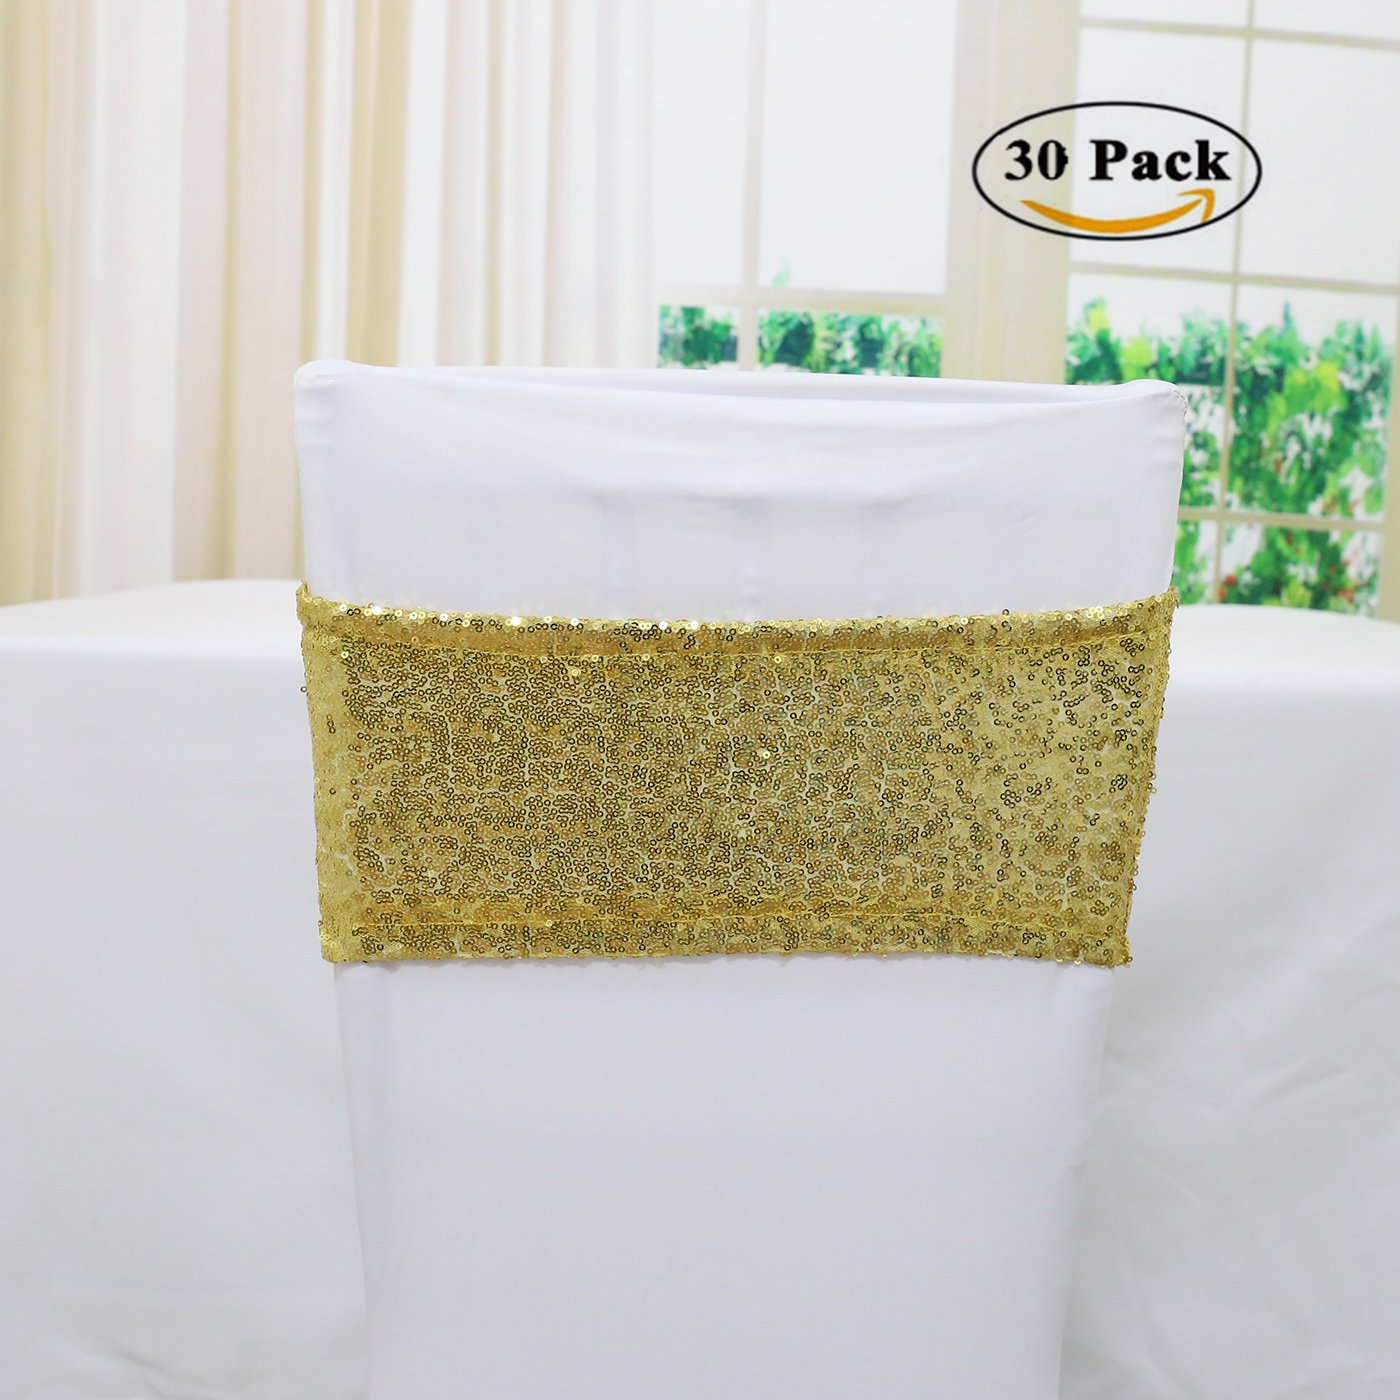 TRLYC 30PCS 4''x16'' Gold Spandex Sequin Chair Sashes Wedding Sequin Chair Sash for Decoration